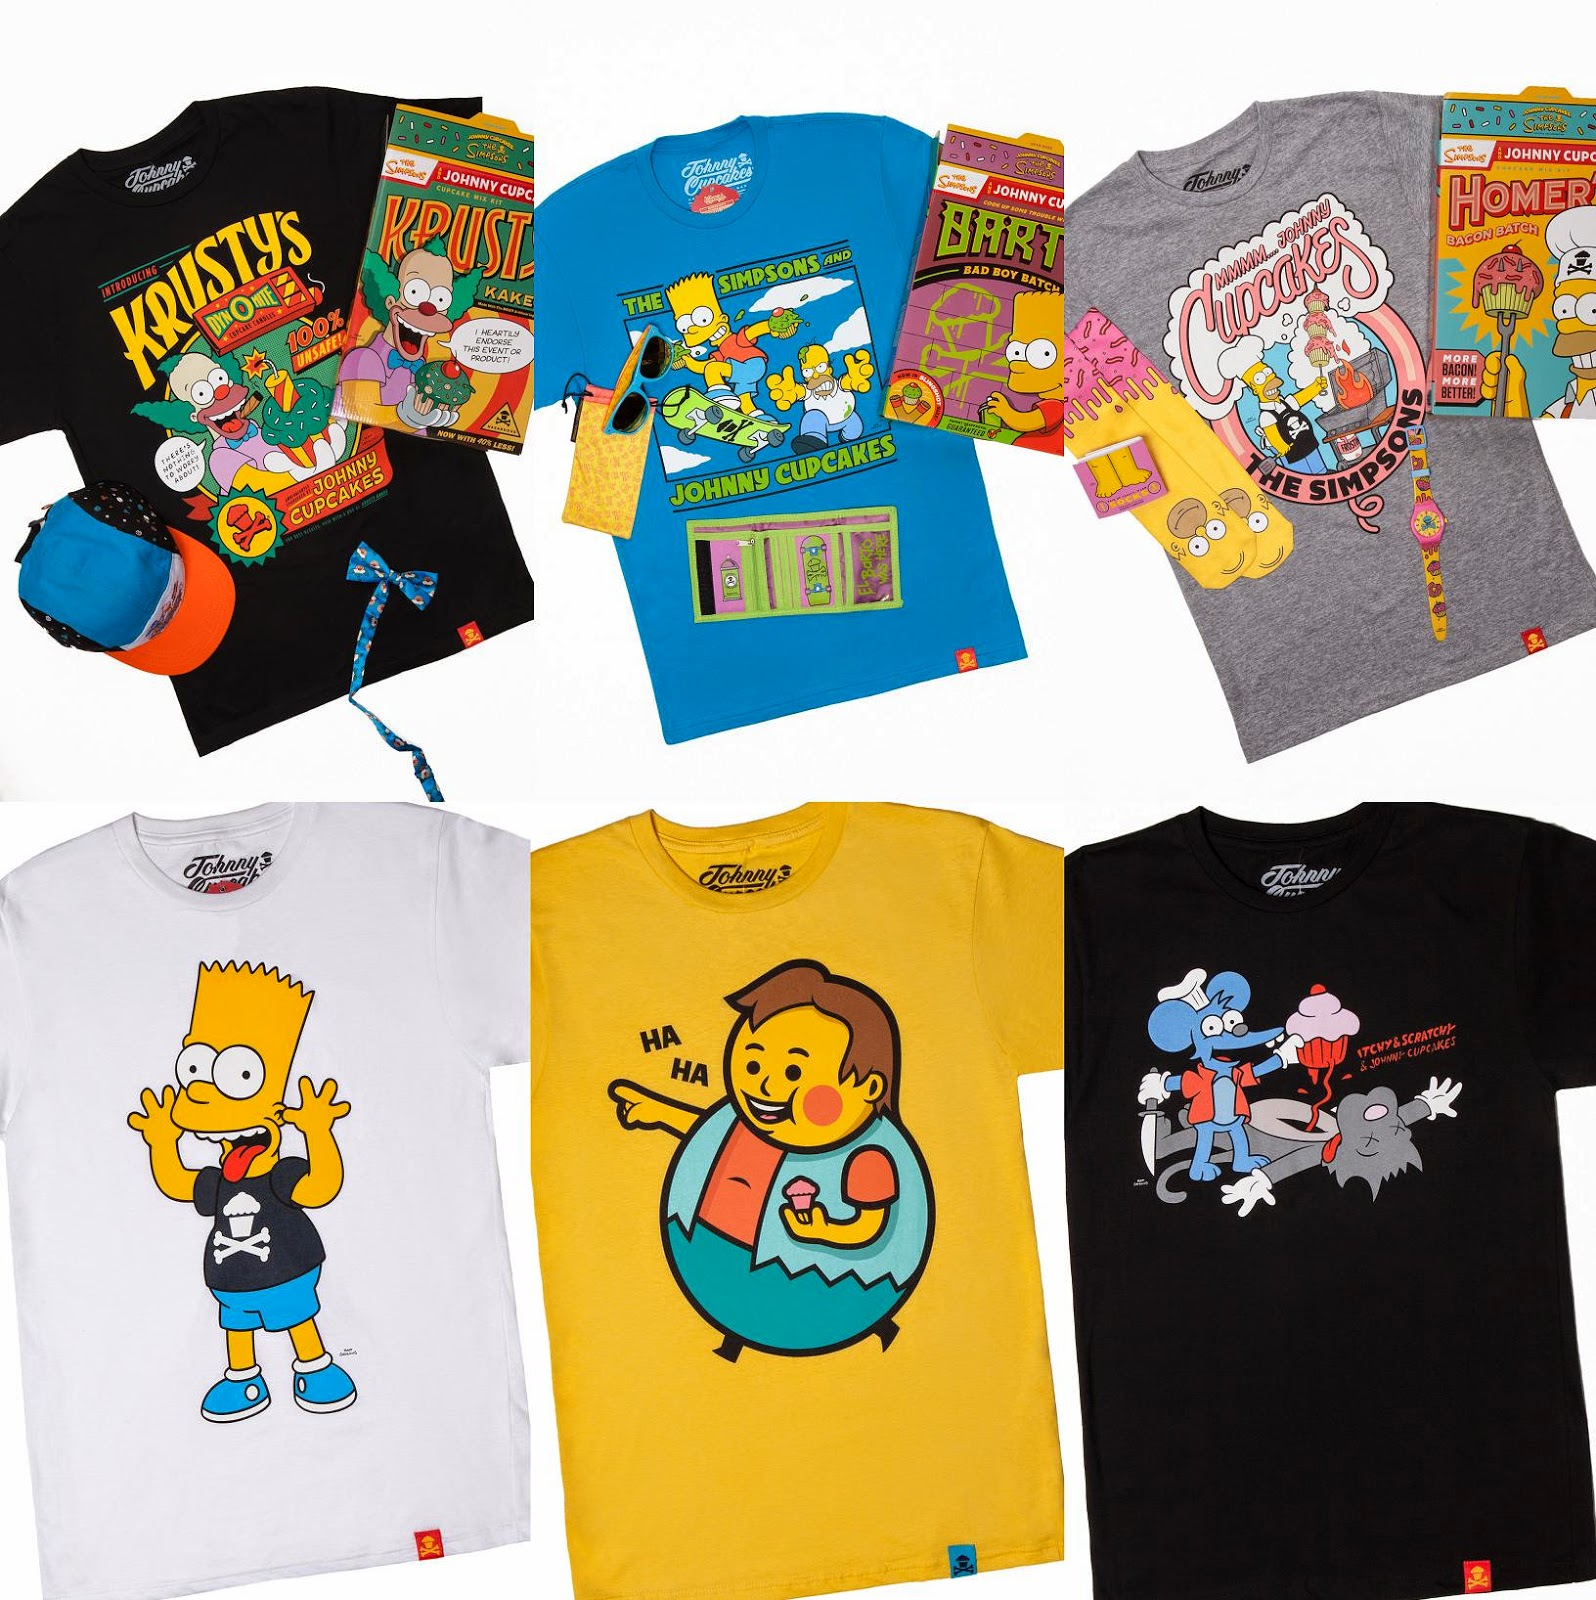 6818e438ce19 The Blot Says...: The Simpsons x Johnny Cupcakes T-Shirt Collection